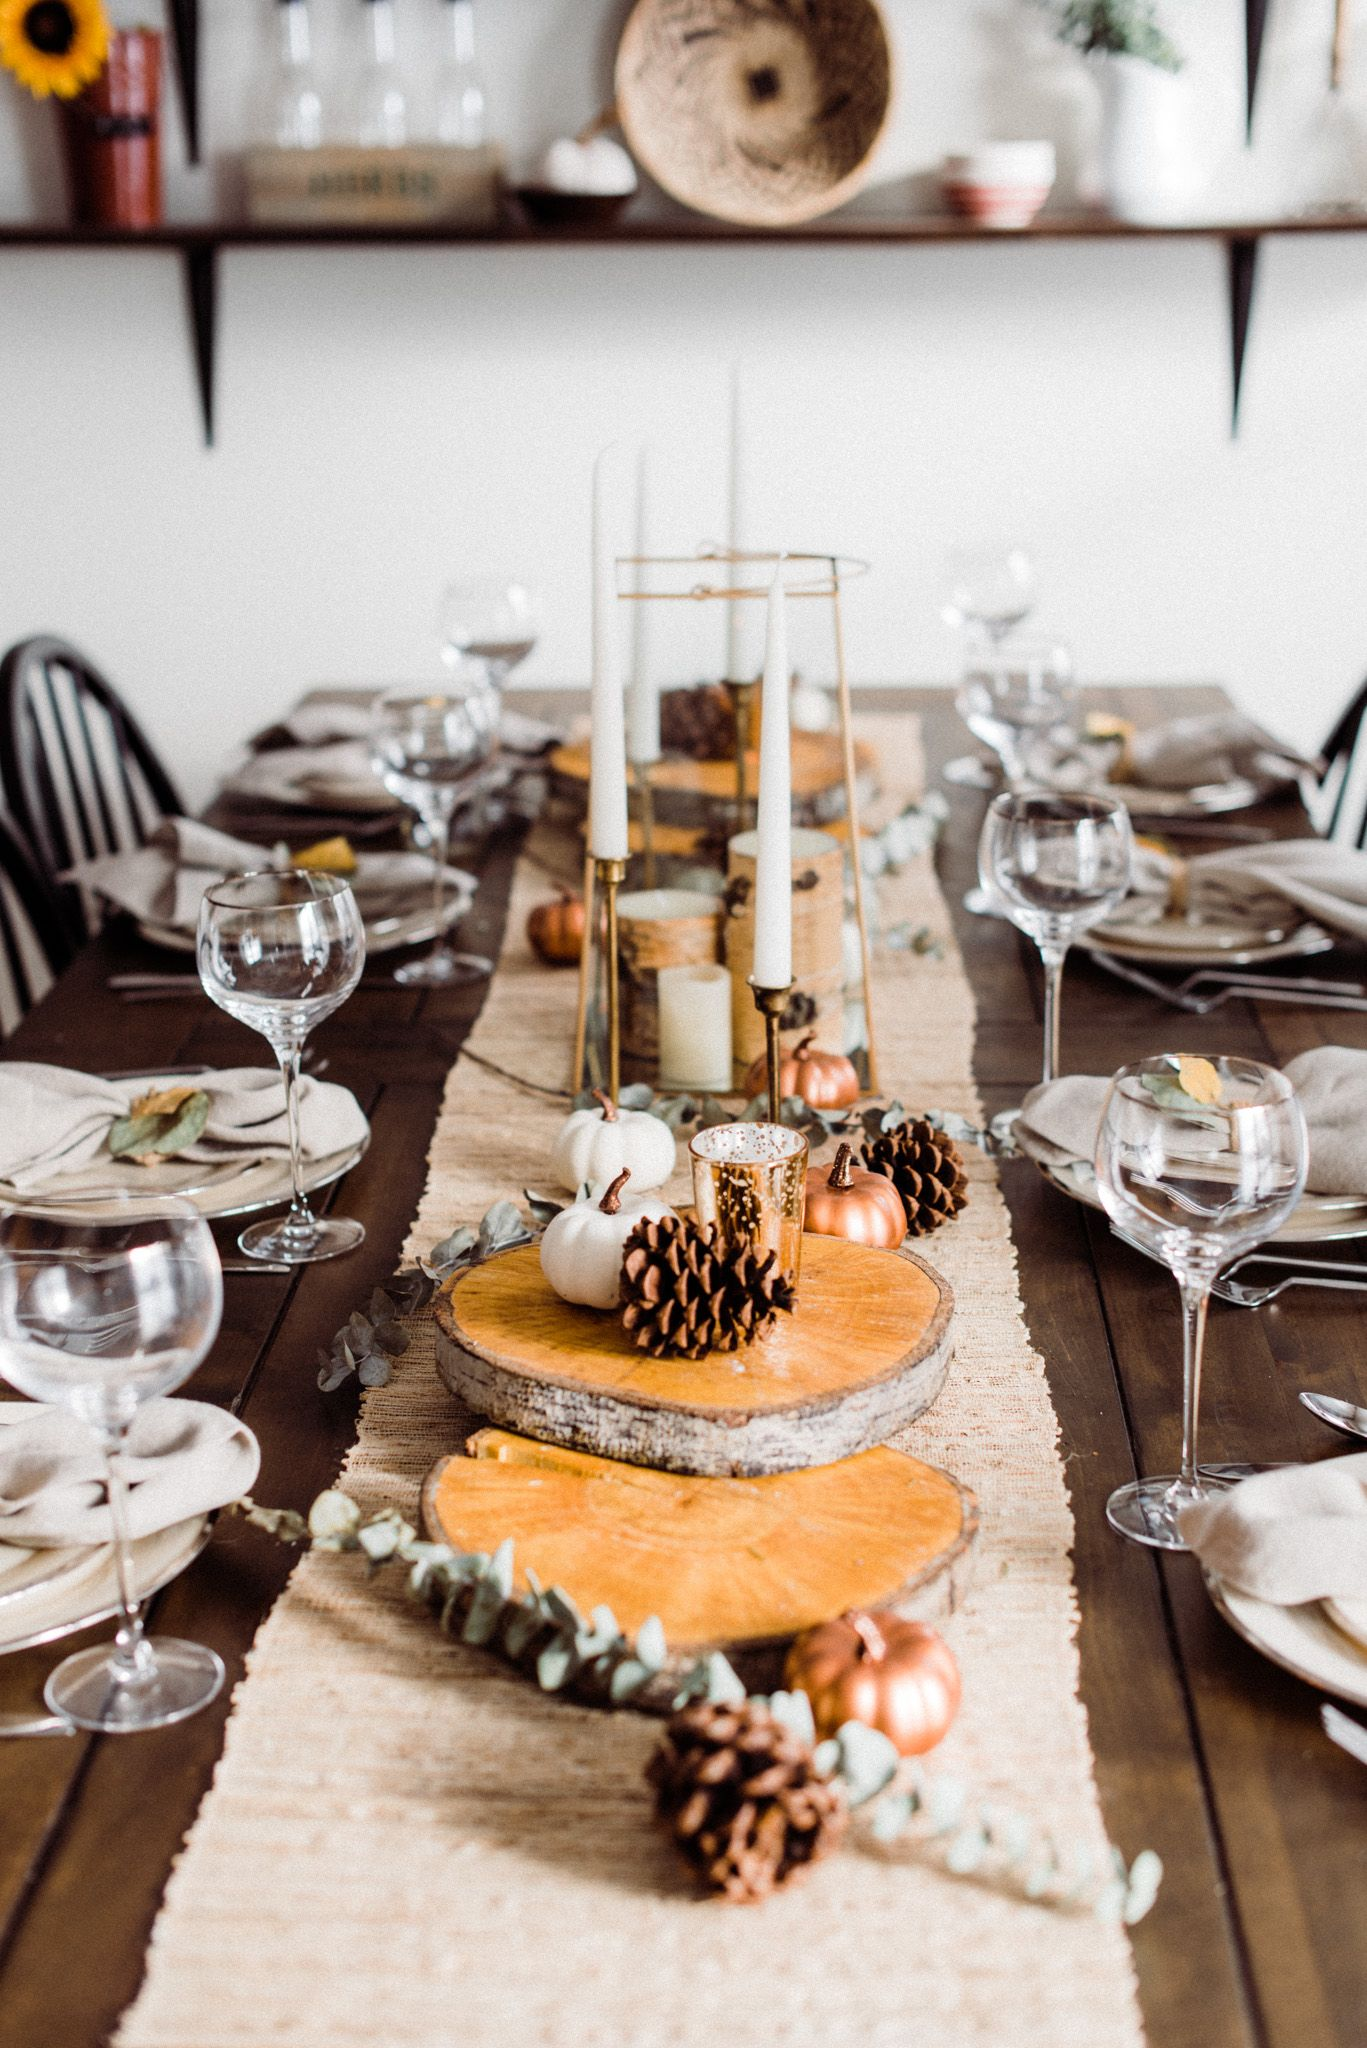 Thanksgiving Table Decor Ideas 4 Inspiring Tips For Any Style Thanksgiving Dinner Table Setting Rustic Thanksgiving Rustic Thanksgiving Table